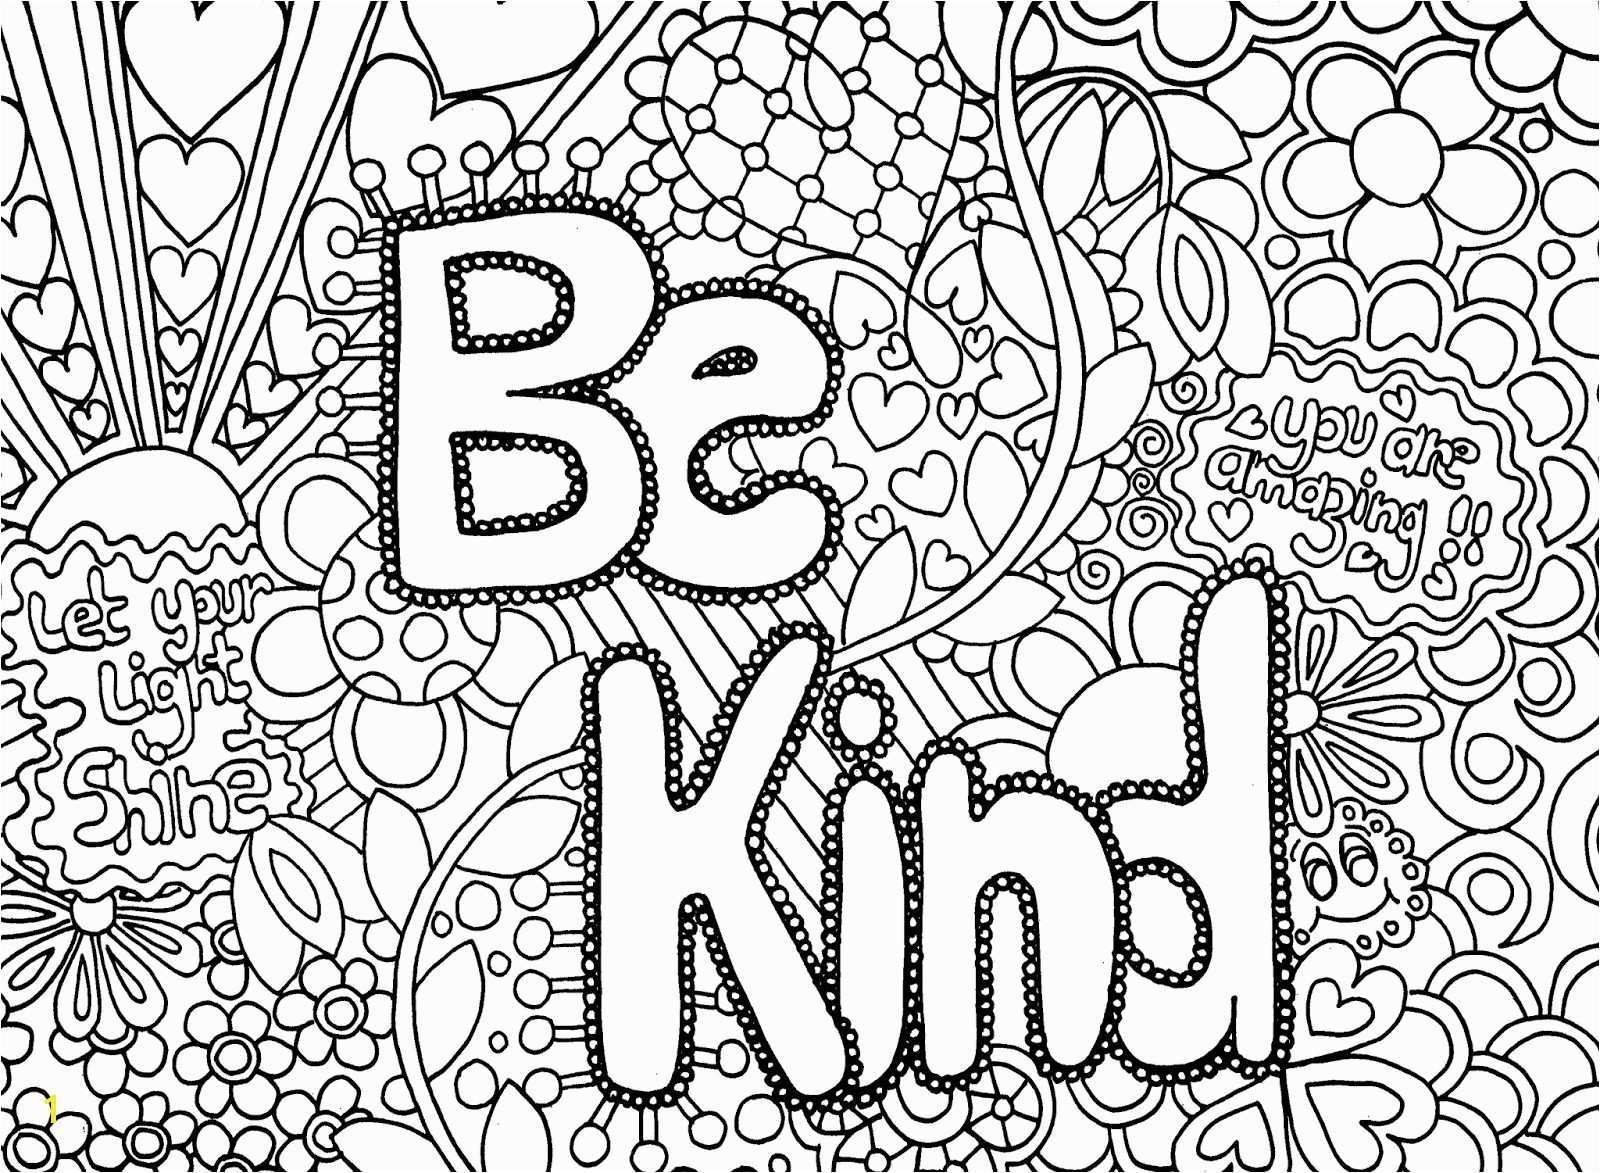 Coloring Pages For 10 Year Old Girls Coloring Page Cool Coloring Pages For 10 Year Olds